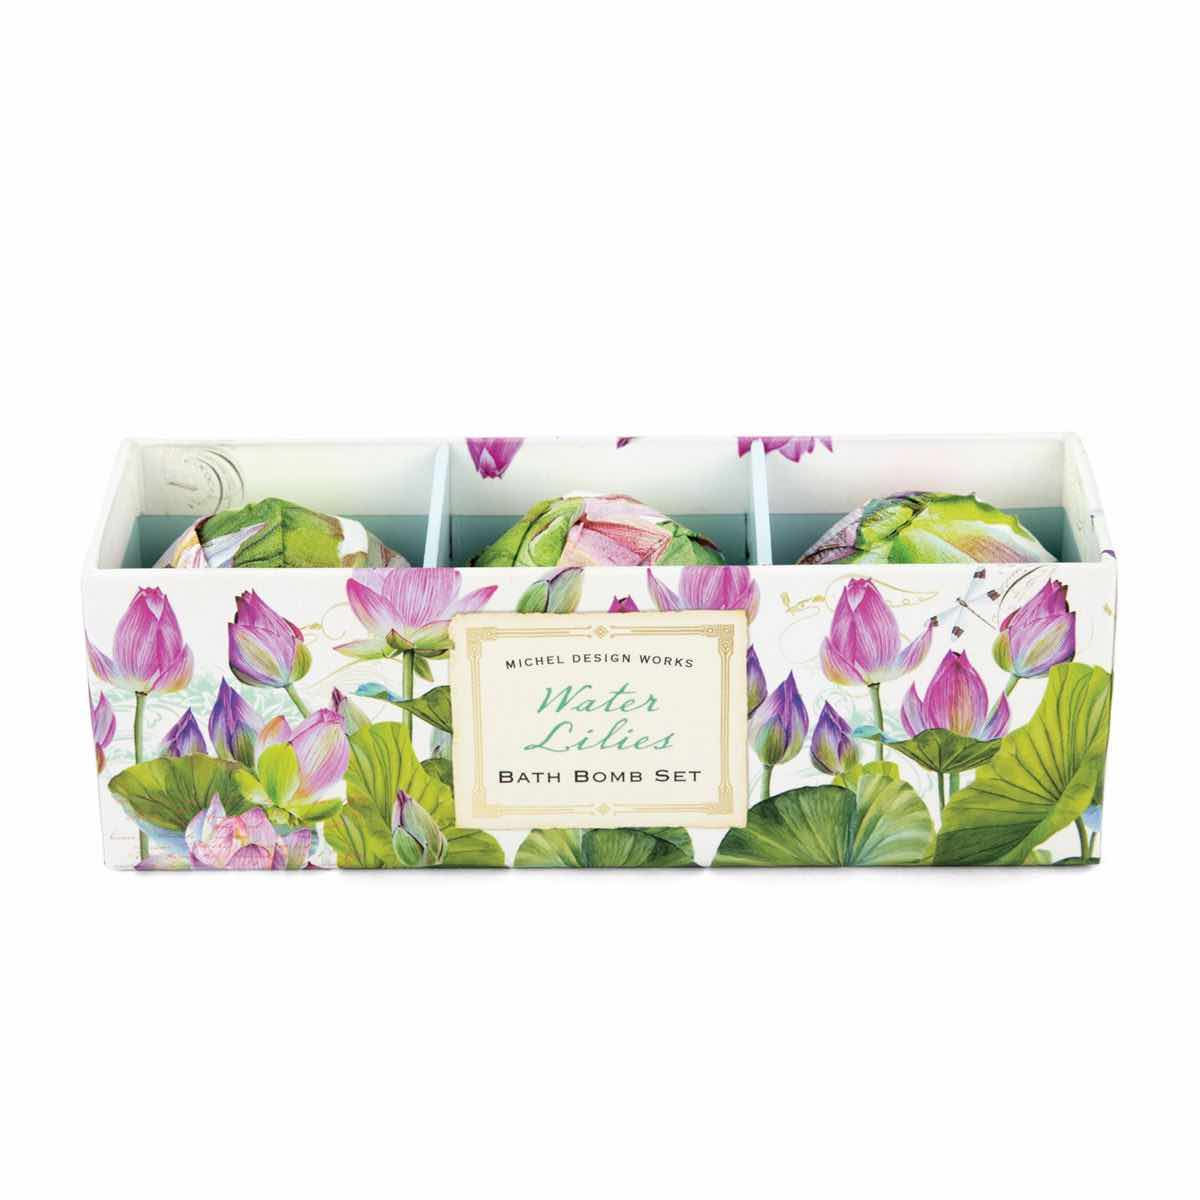 Michel Design Works Bath Bomb Set | Water Lilies